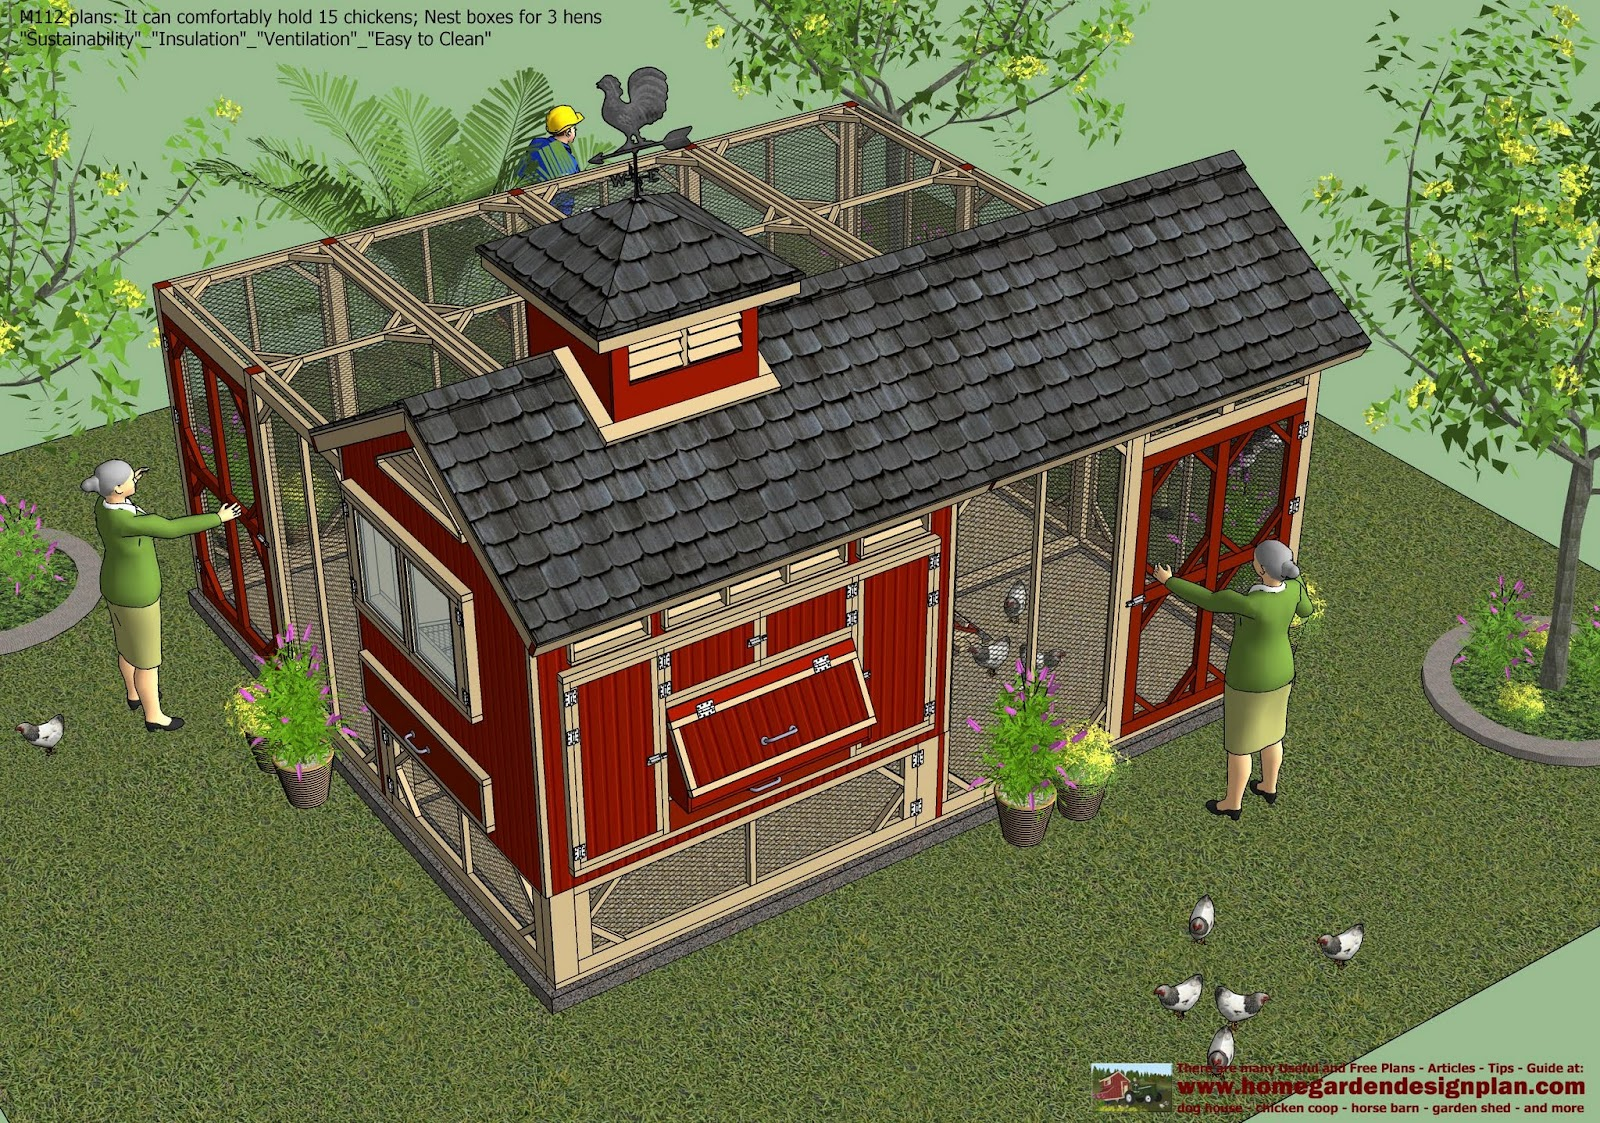 home garden plans: M112 - Chicken Coop Plans Construction ...